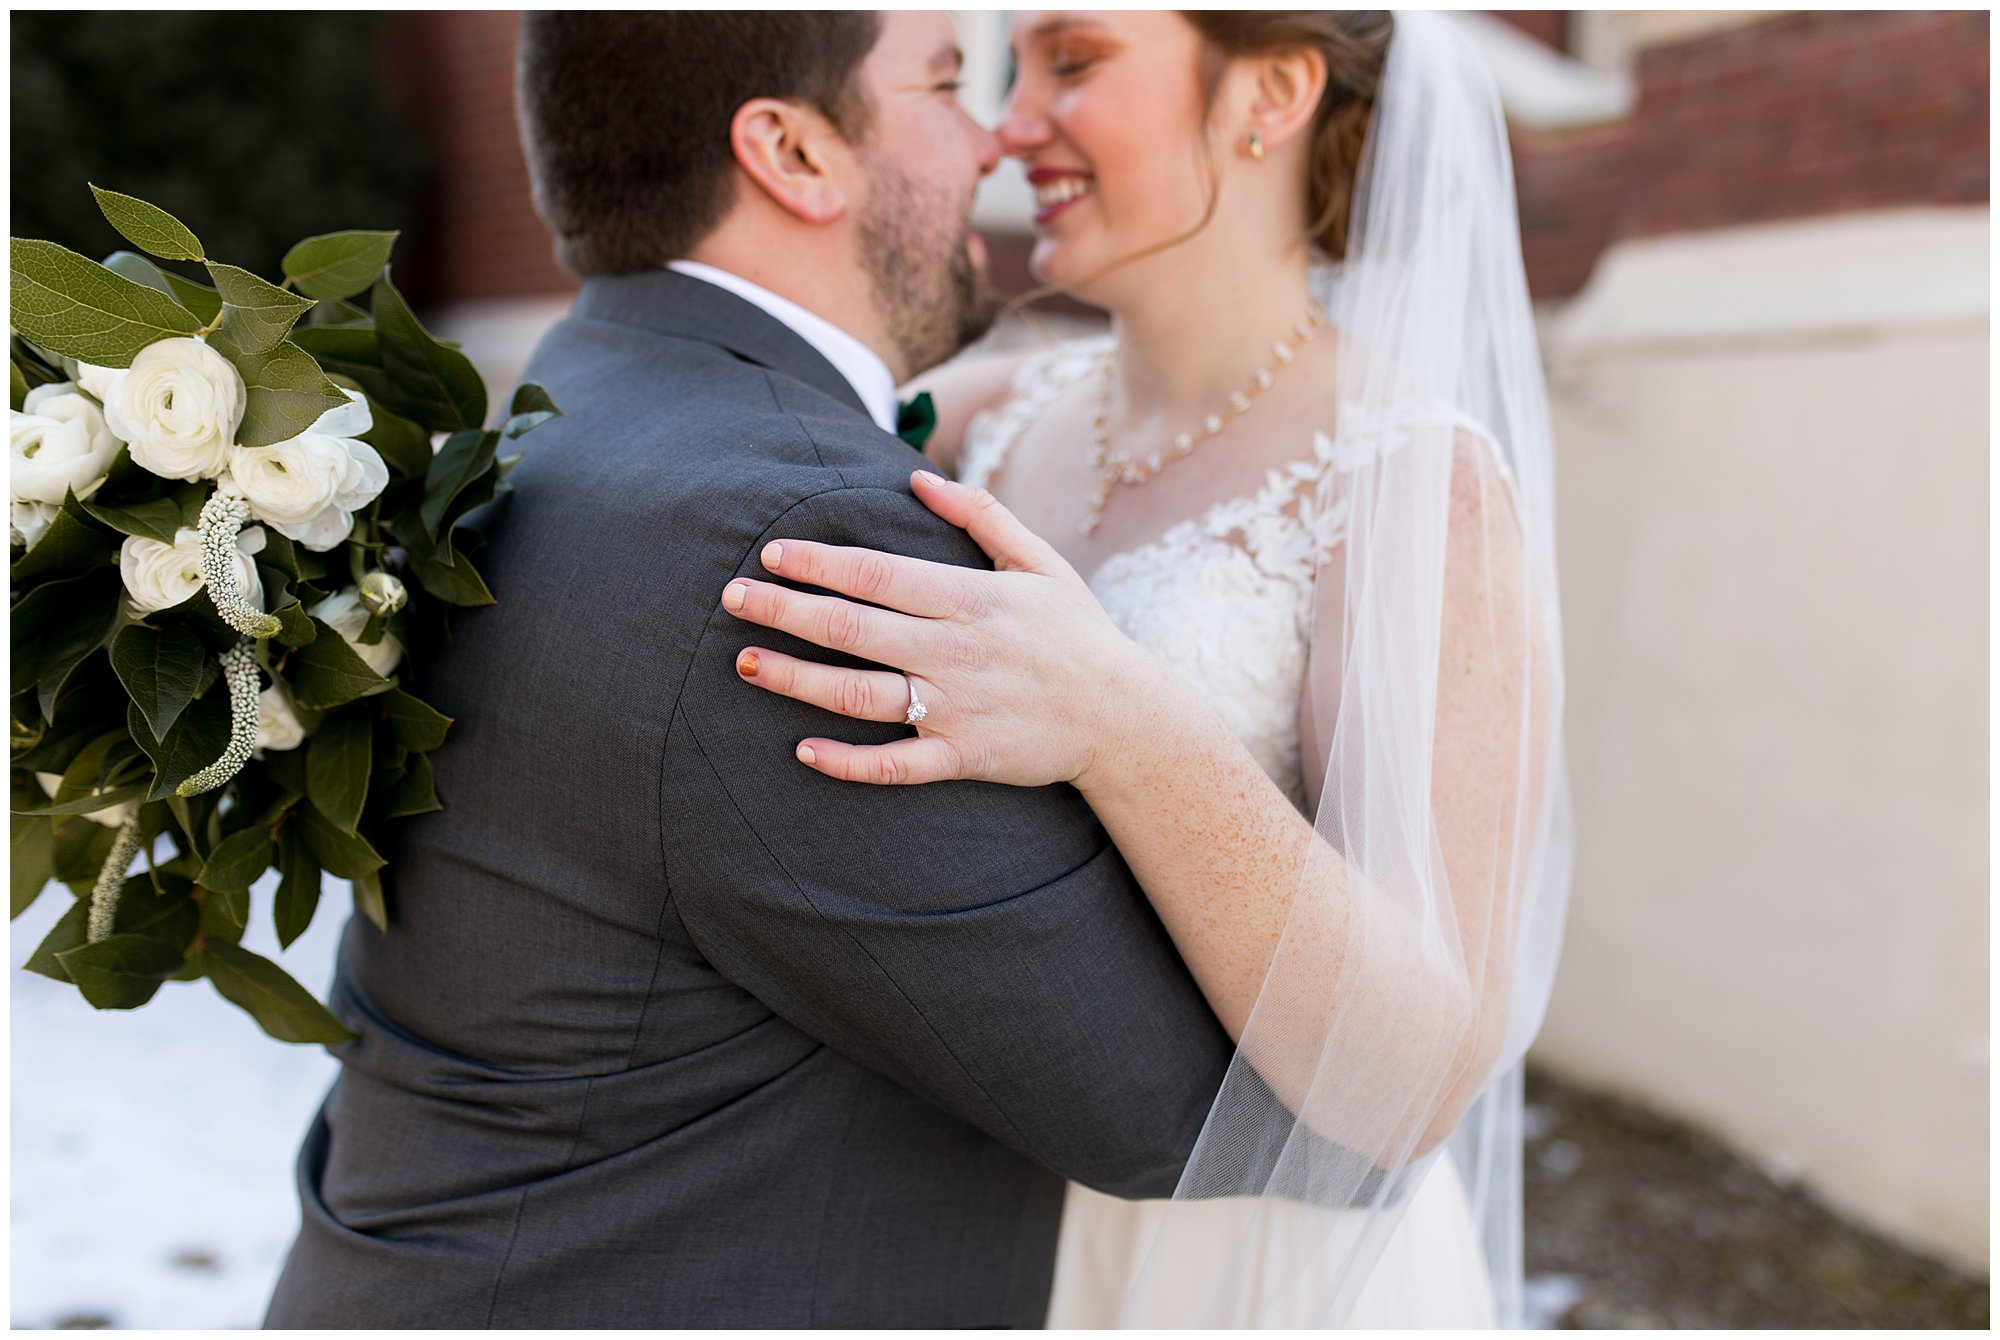 groom pulls bride close with The Flower Boys bouquet wrapped around his back